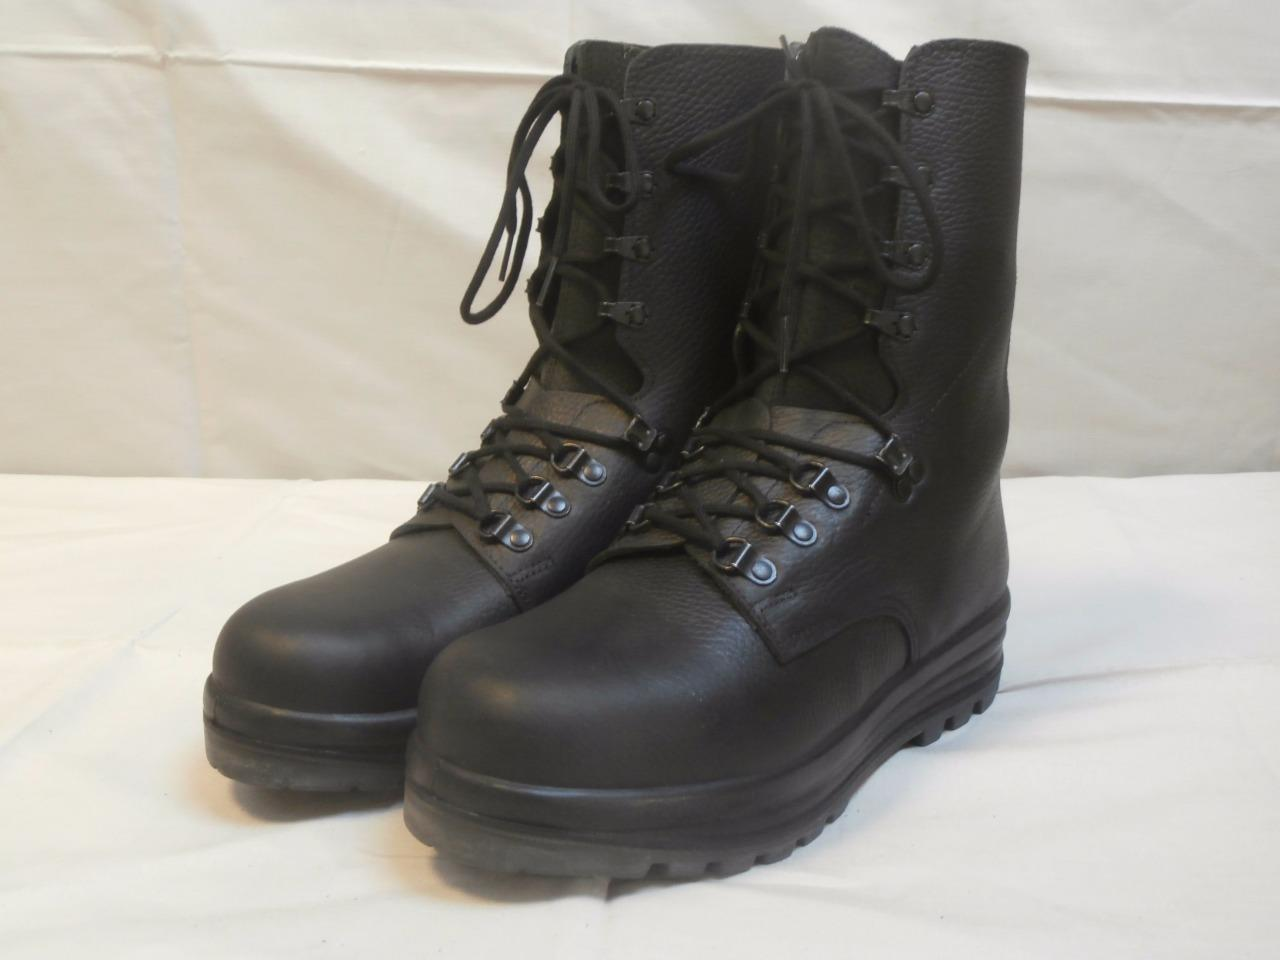 Swiss Army Para Boots New Black Leather Combat Assault